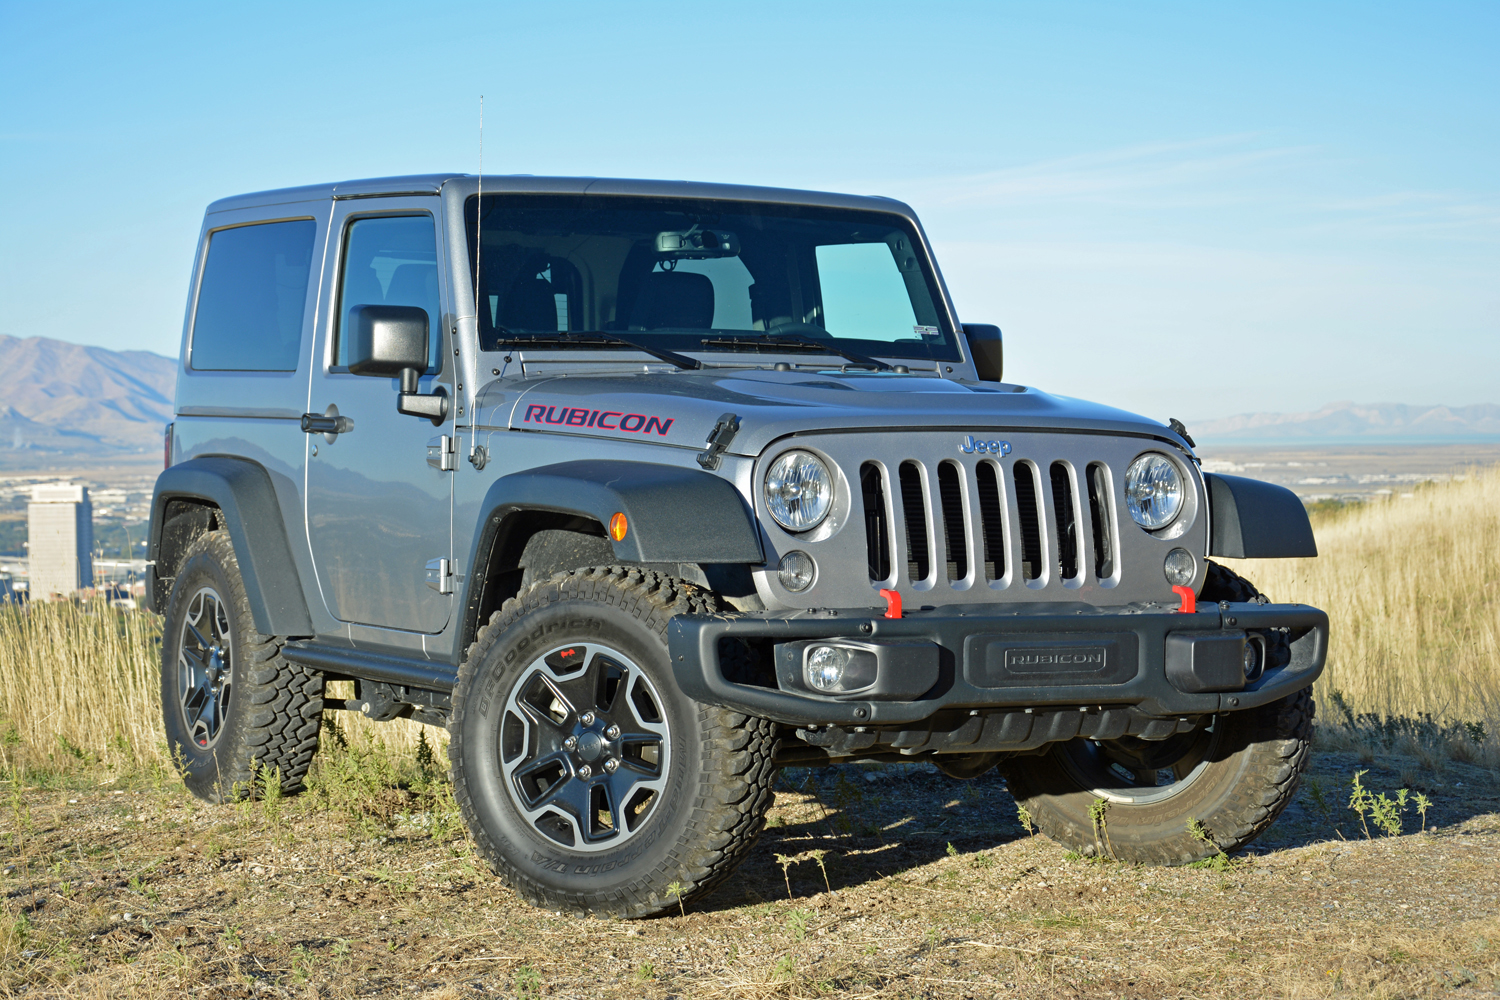 2018 jeep wrangler news rumors specs performance release date digital trends. Black Bedroom Furniture Sets. Home Design Ideas